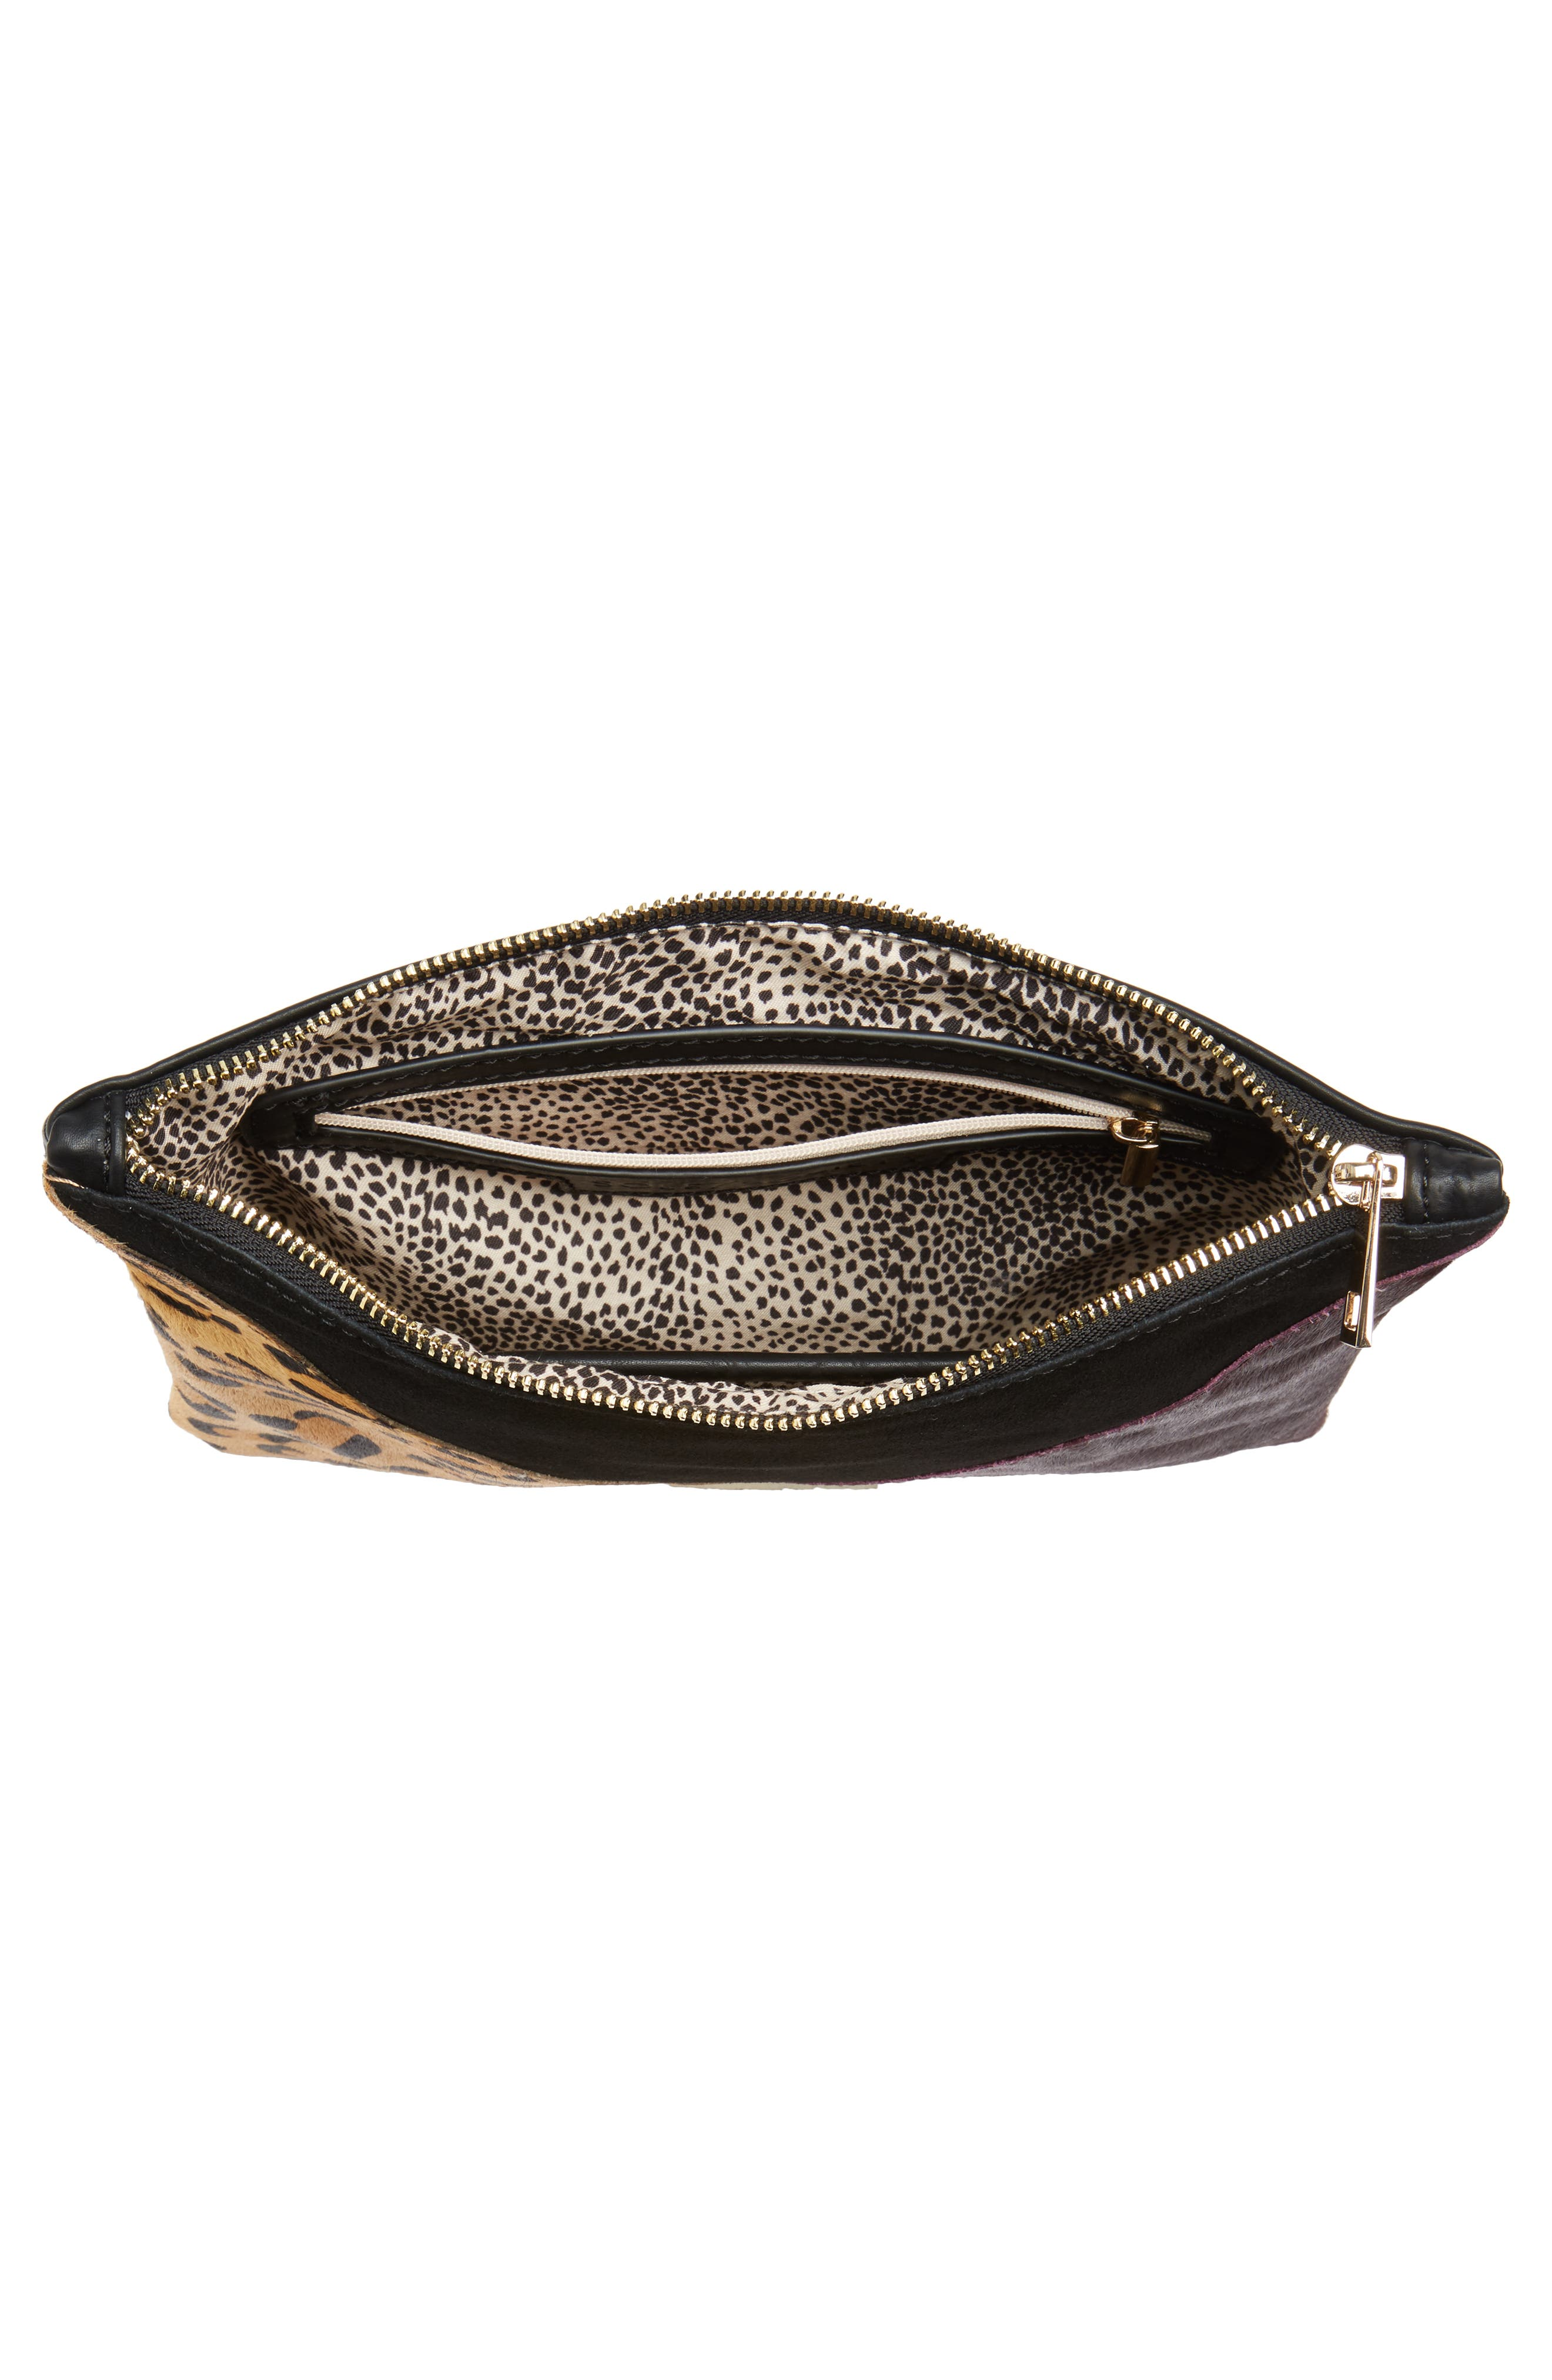 Shailey Patchwork Genuine Calf Hair Clutch,                             Alternate thumbnail 4, color,                             Leopard Multi